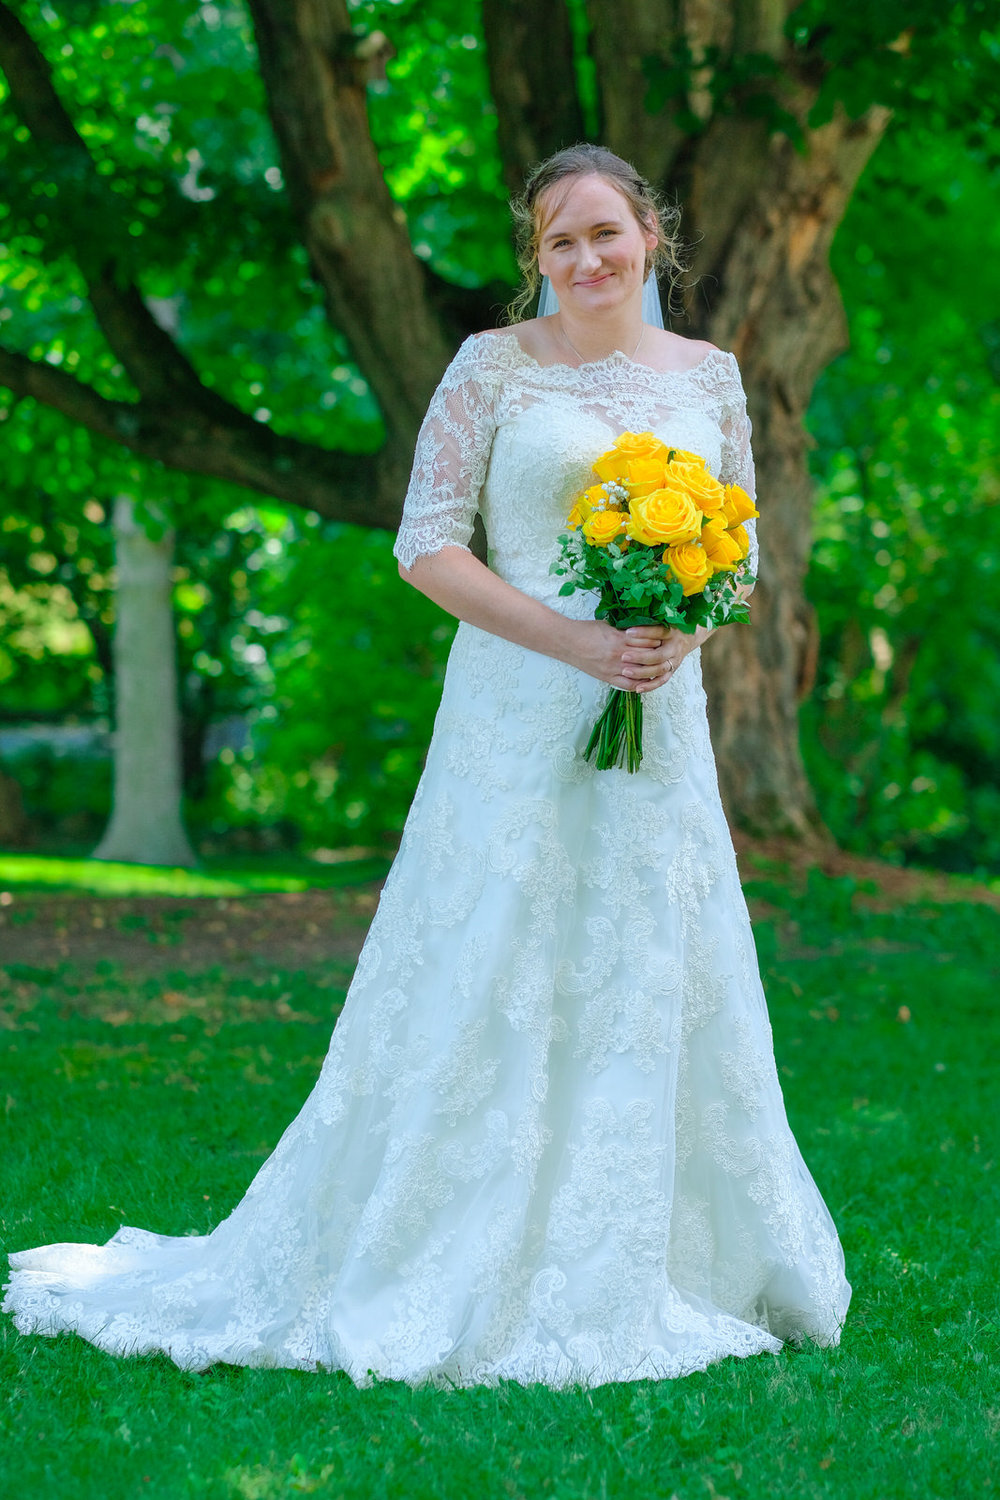 candid-vermont-wedding-photography-434.jpg